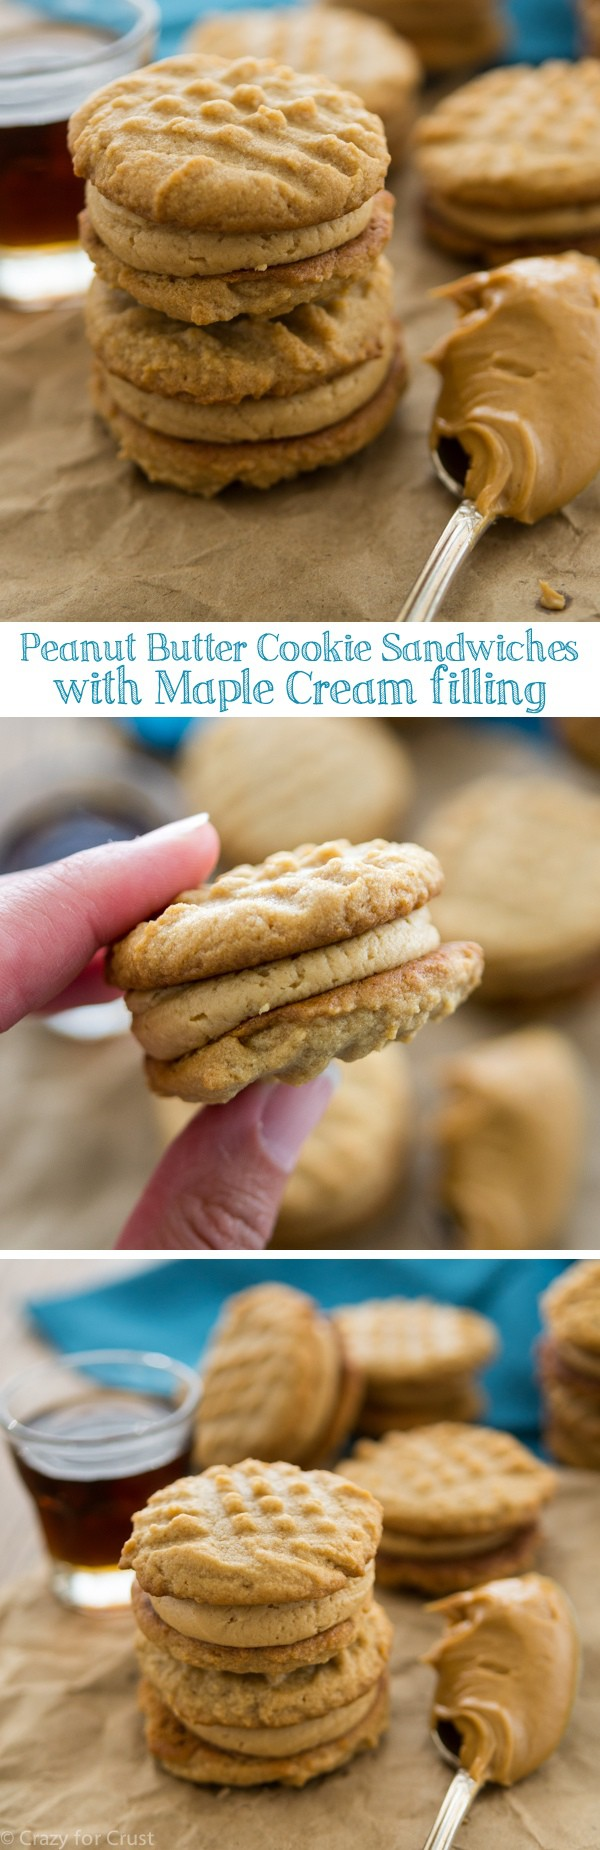 Oatmeal Sandwich Cookies With Creamy Peanut Butter Filling Recipes ...